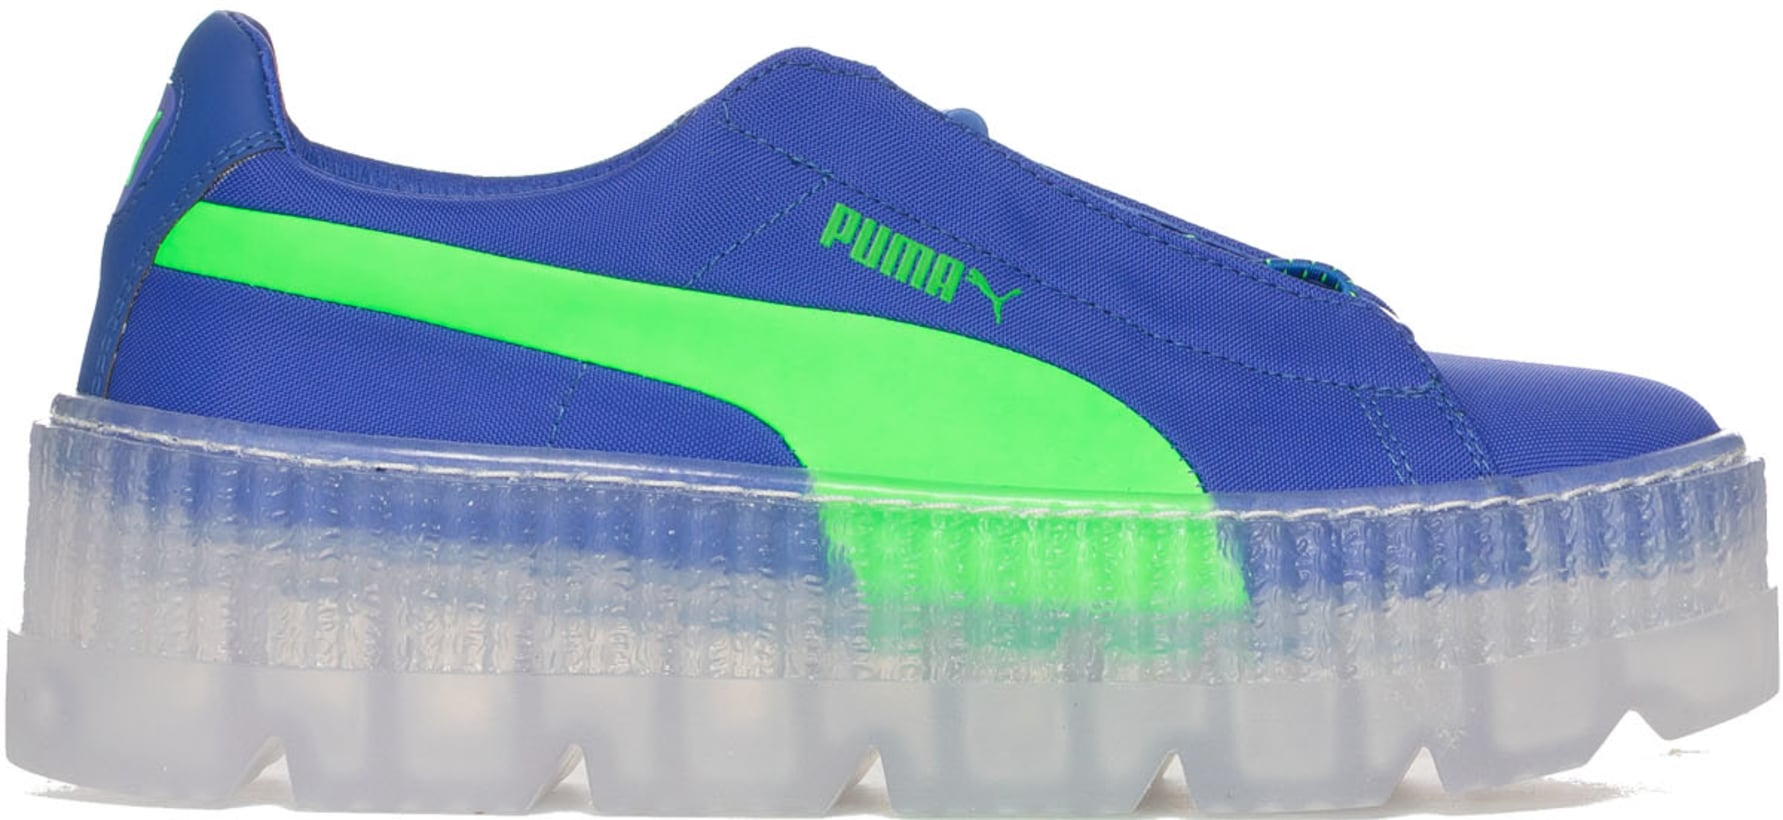 best loved 48fcc 0790e Puma - Cleated Creeper Surf - Dazzling Blue/Green Gecko